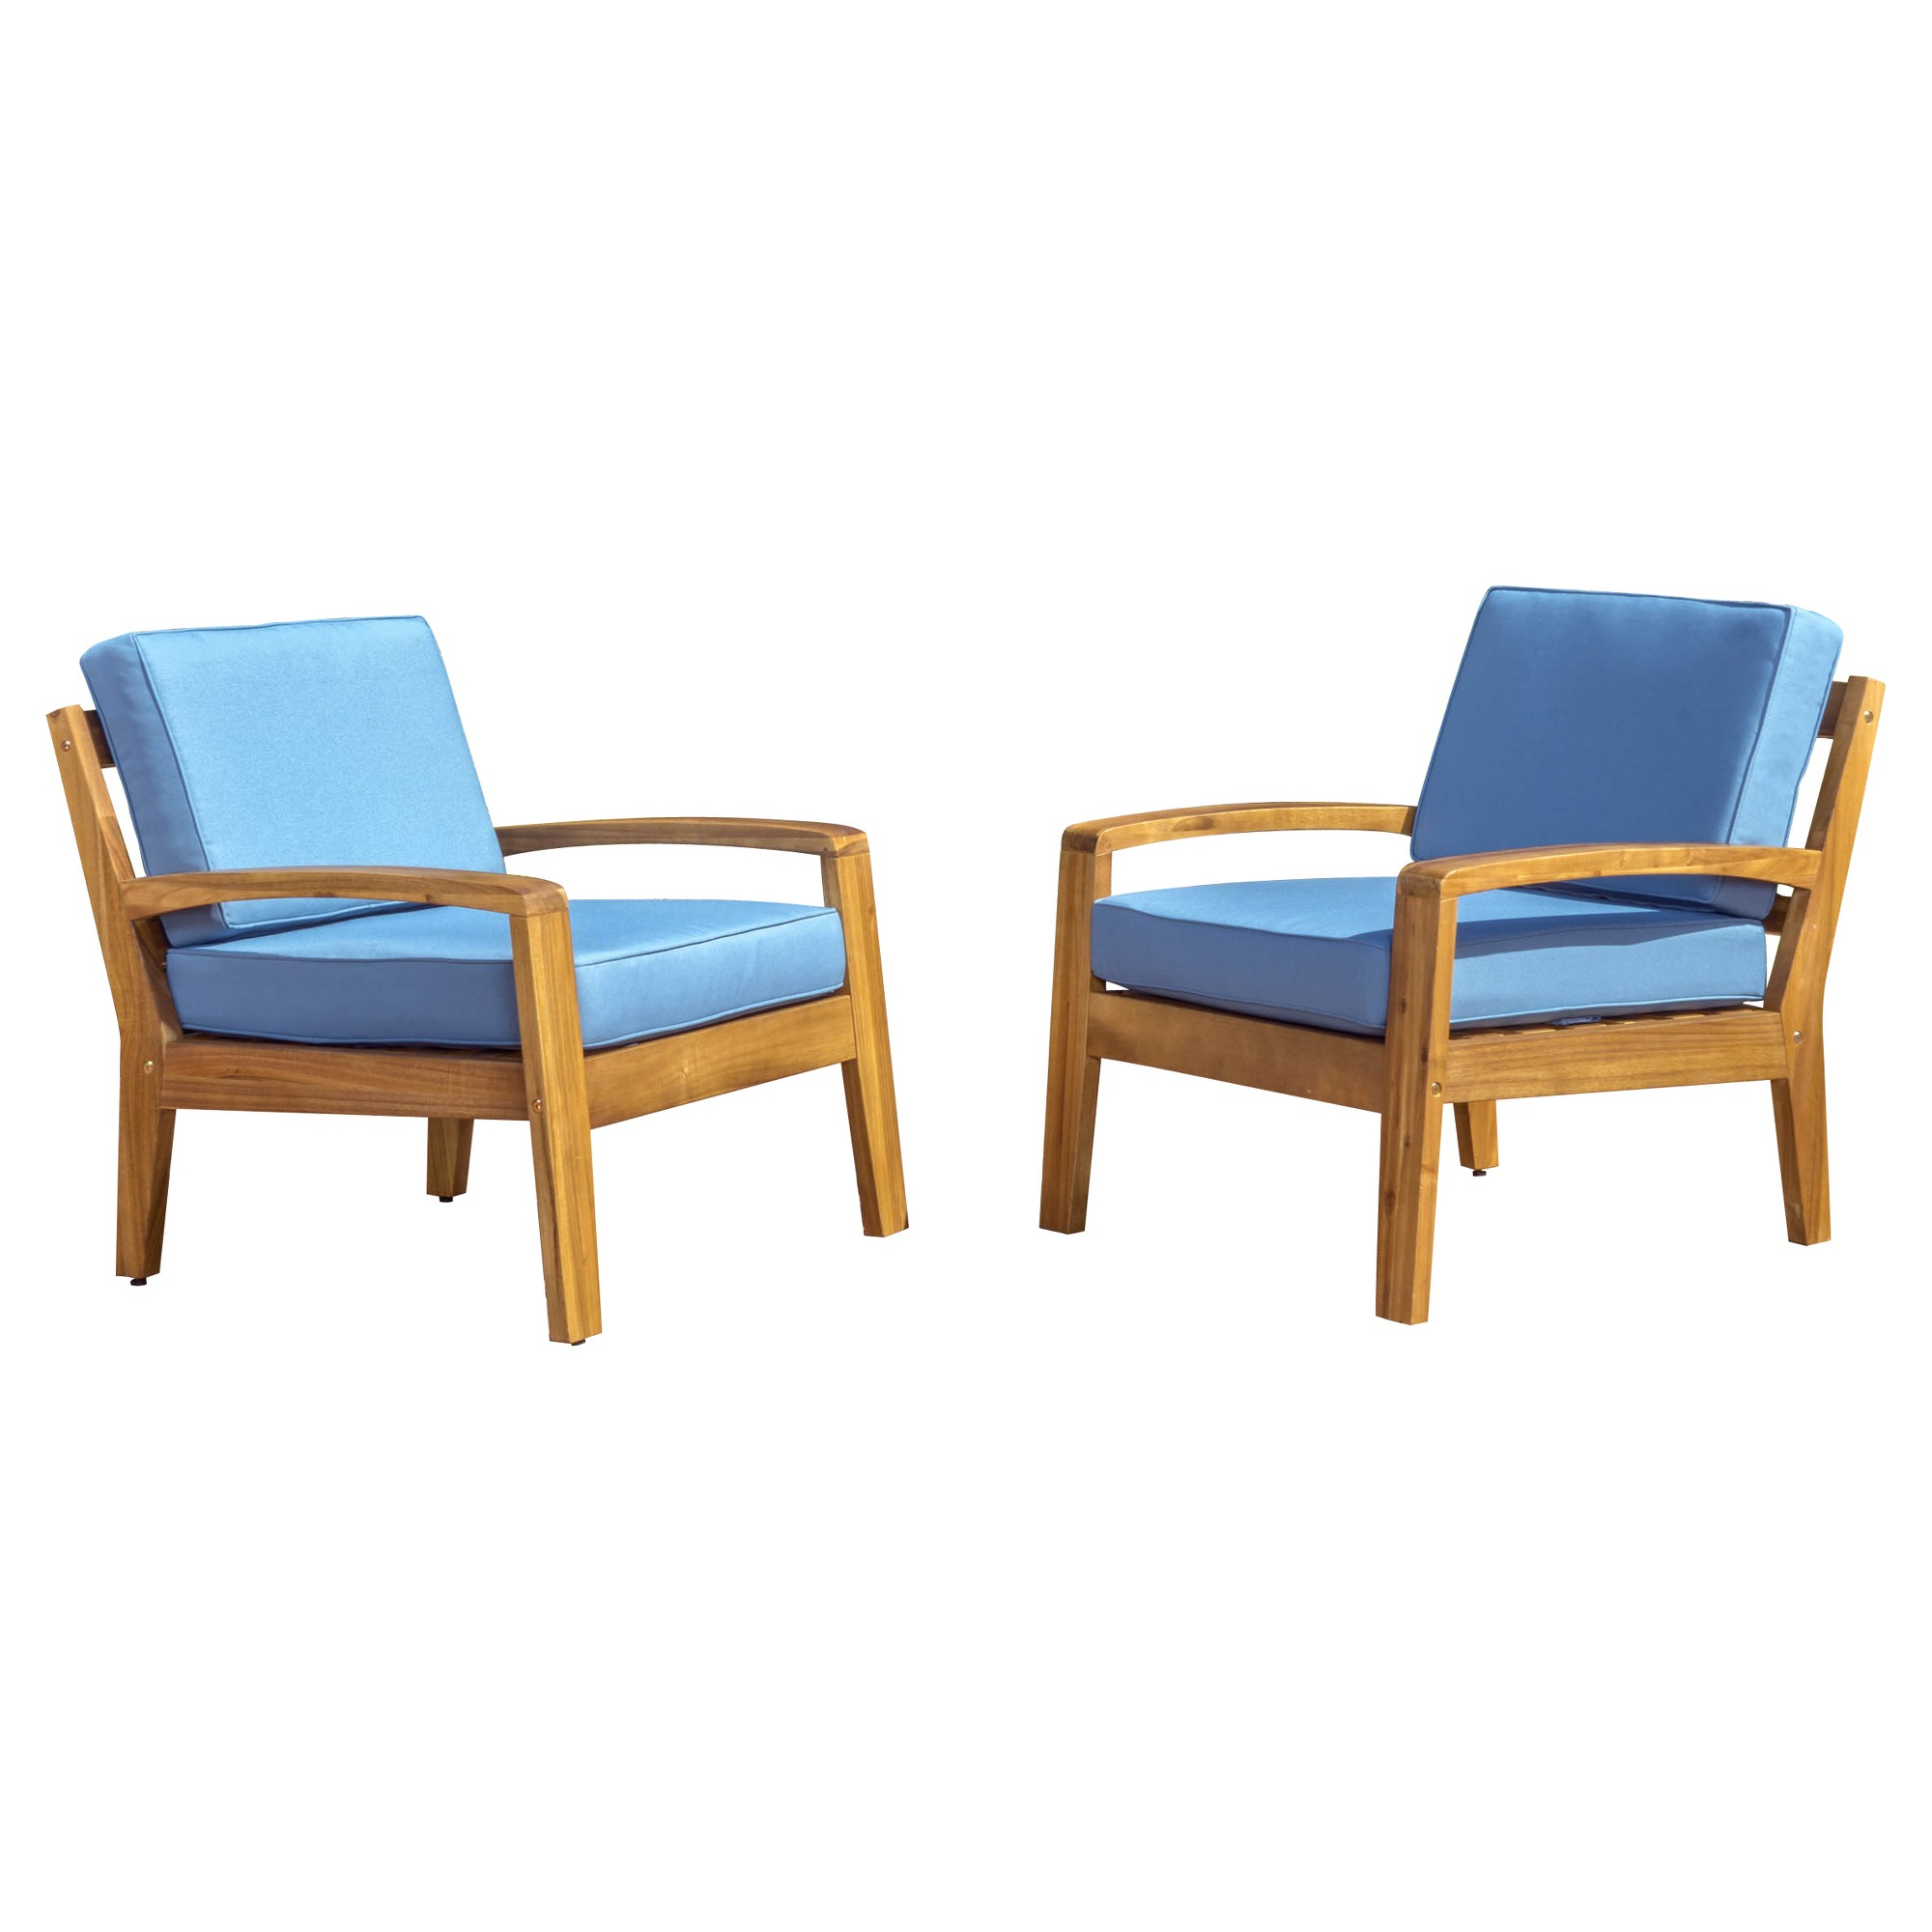 Grenada Set of 2 Wooden Club Chairs With Cushions - Blue ...